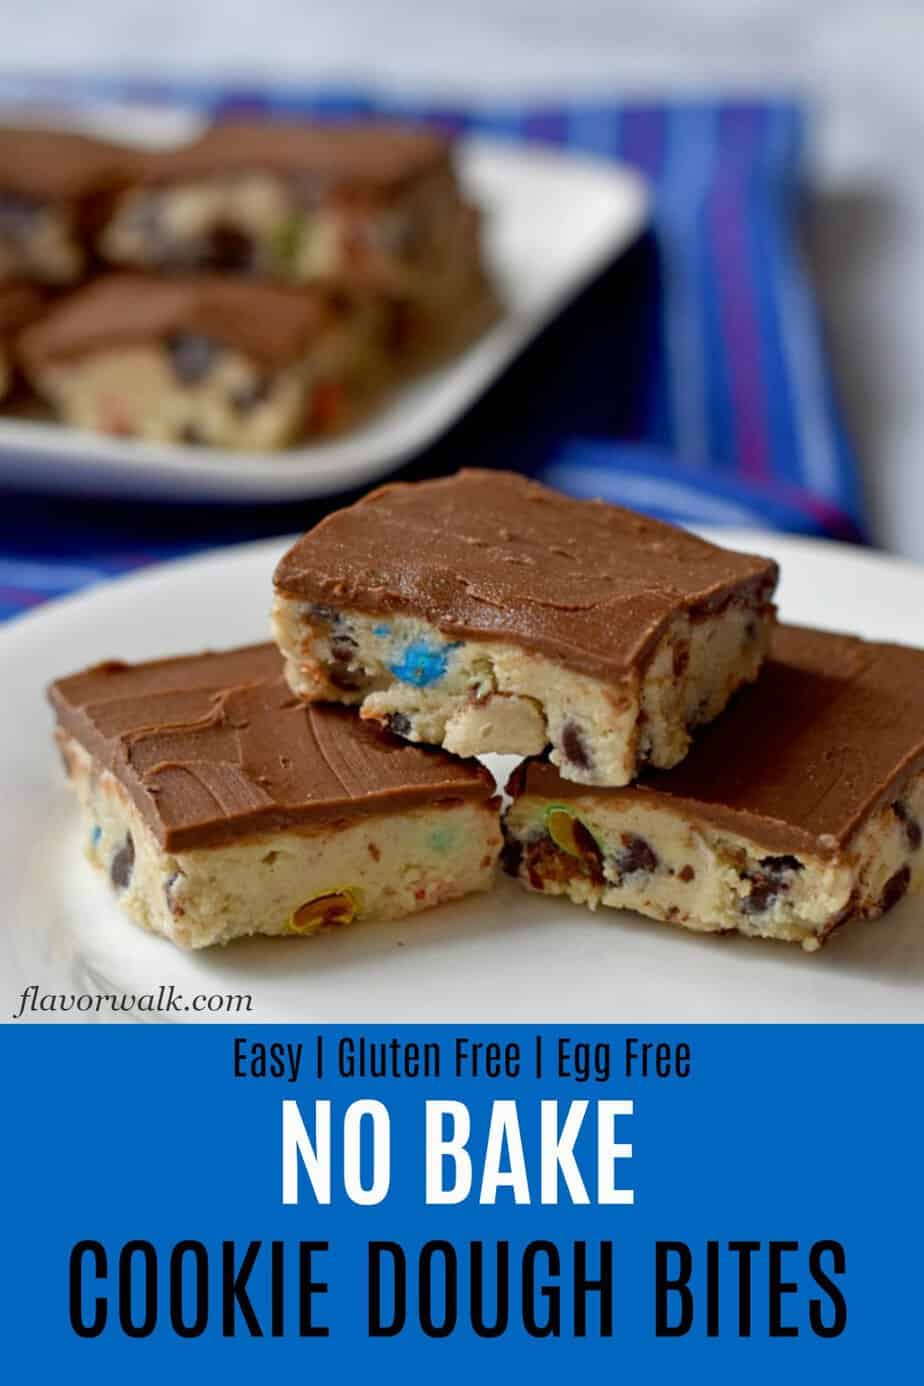 These No Bake Cookie Dough Bites are easy to make and hard to resist. You won't be able to eat just one. They're the perfect treat for kids and every kid-at-heart! #glutenfreerecipes #nobake #cookiedoughbites